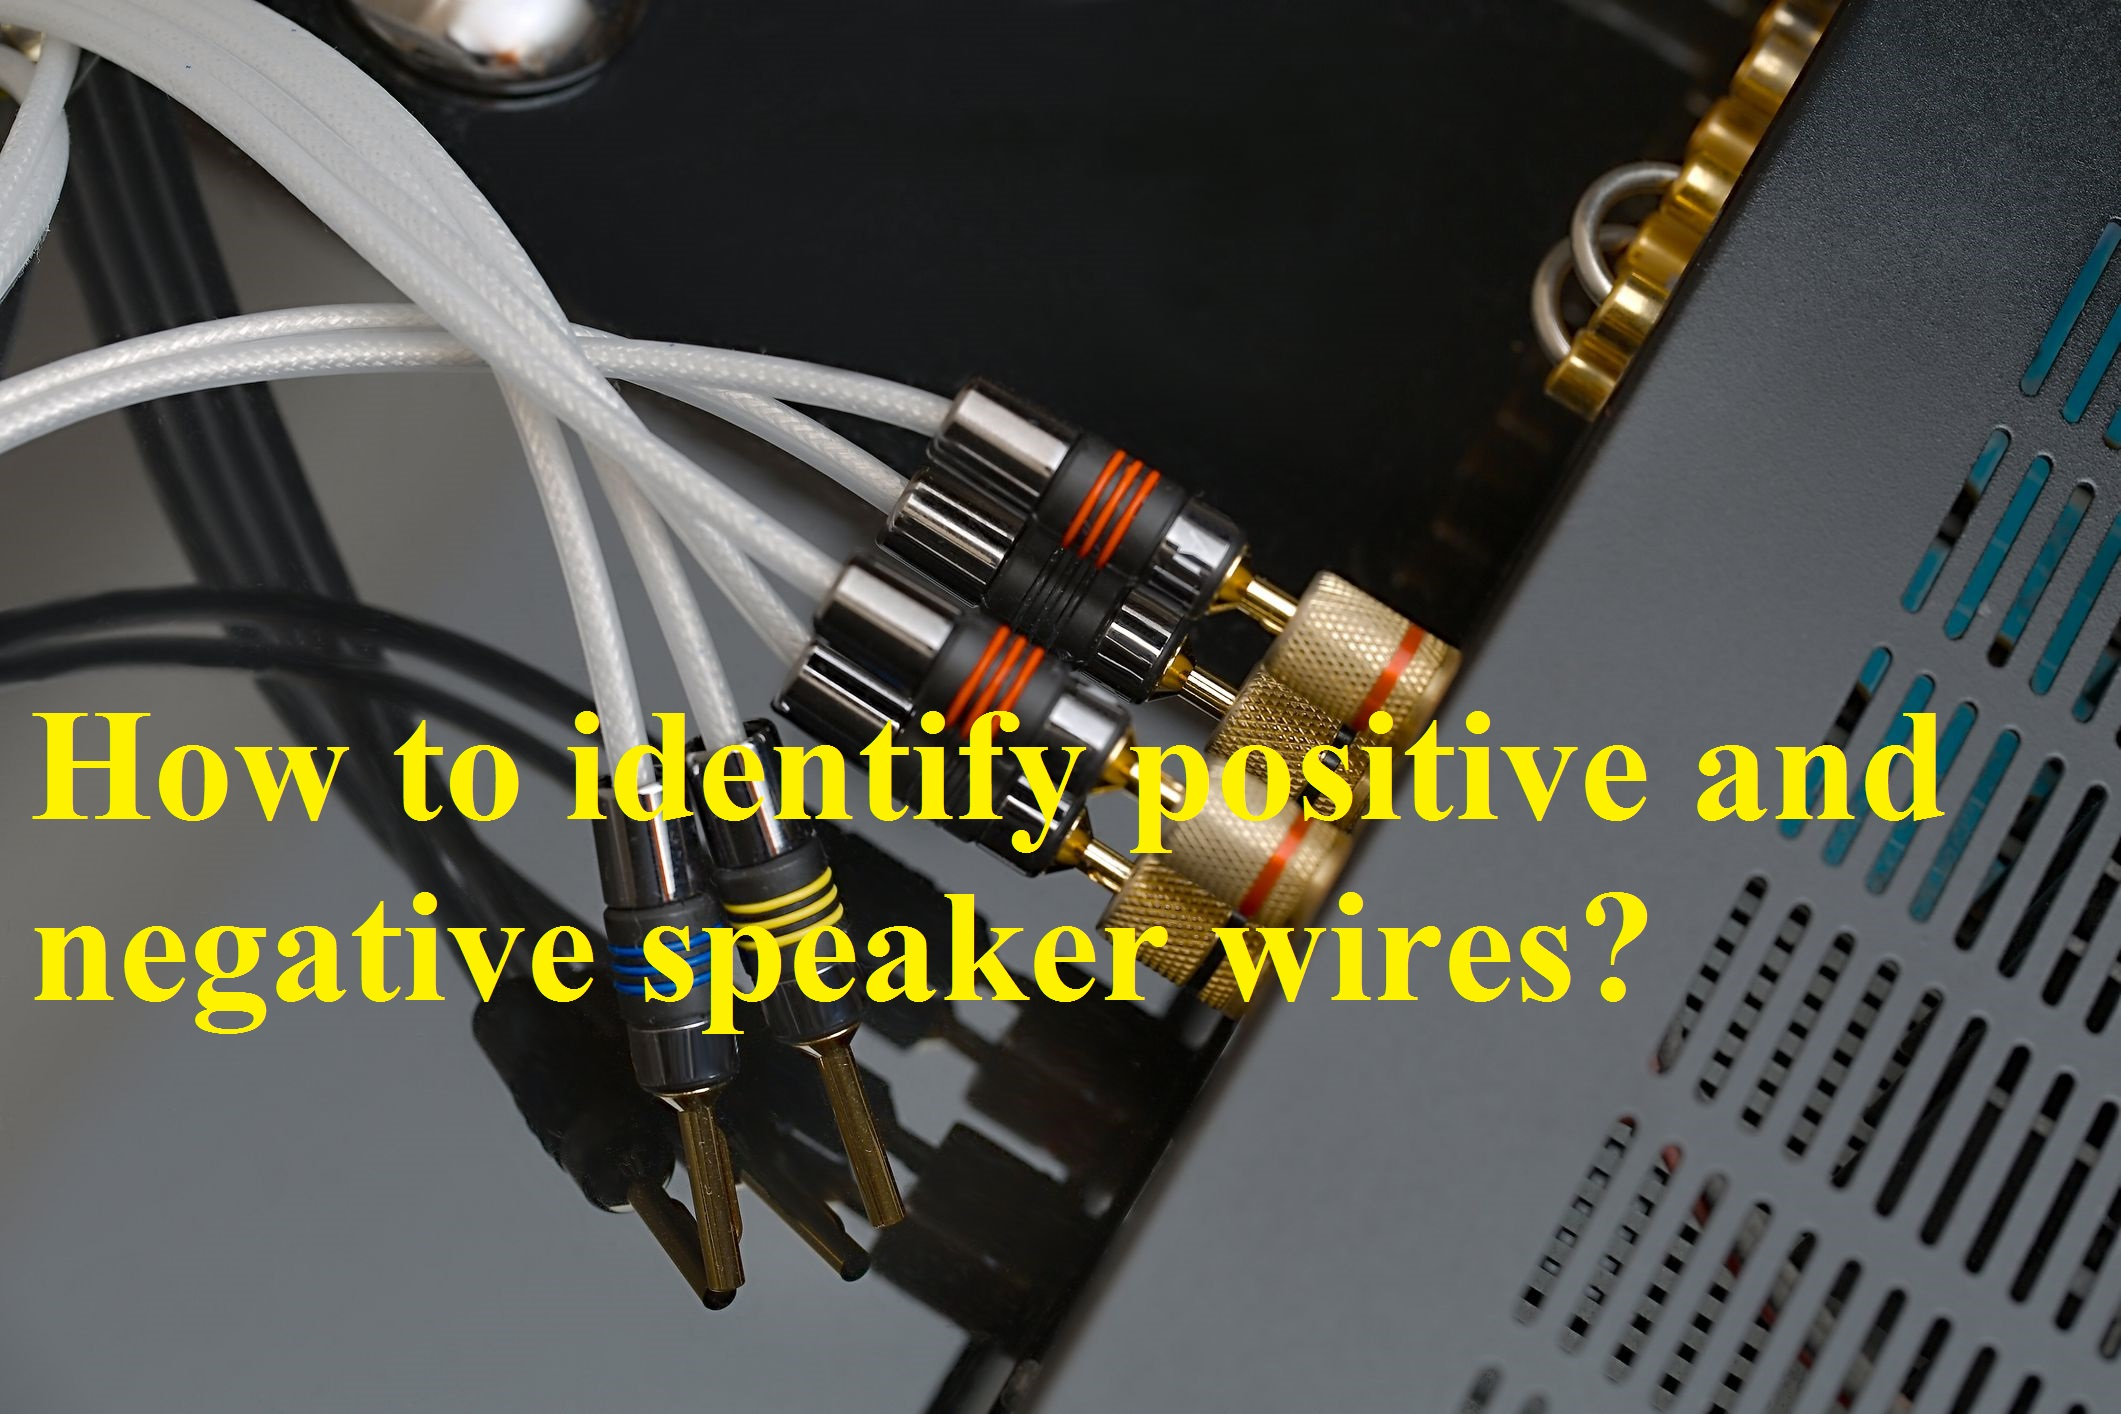 How to identify positive and negative speaker wires?